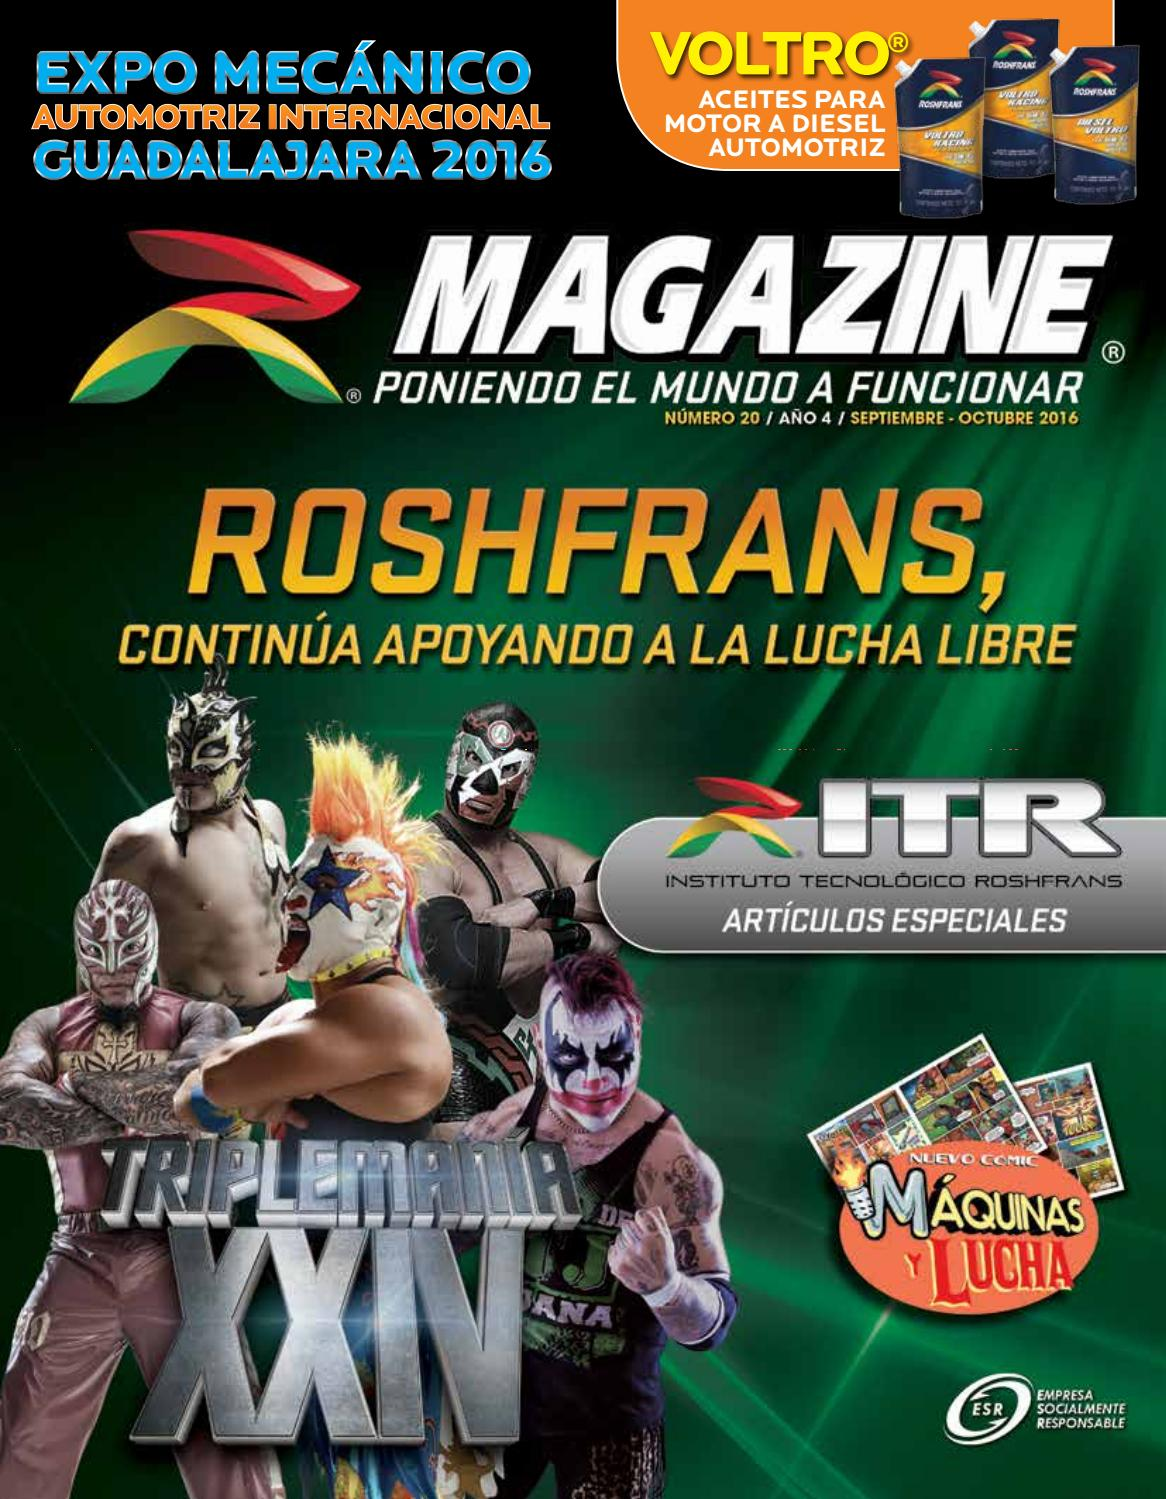 Roshfrans Magazine No. 20 by Comercial Roshfrans, S.A. de C.V. - issuu